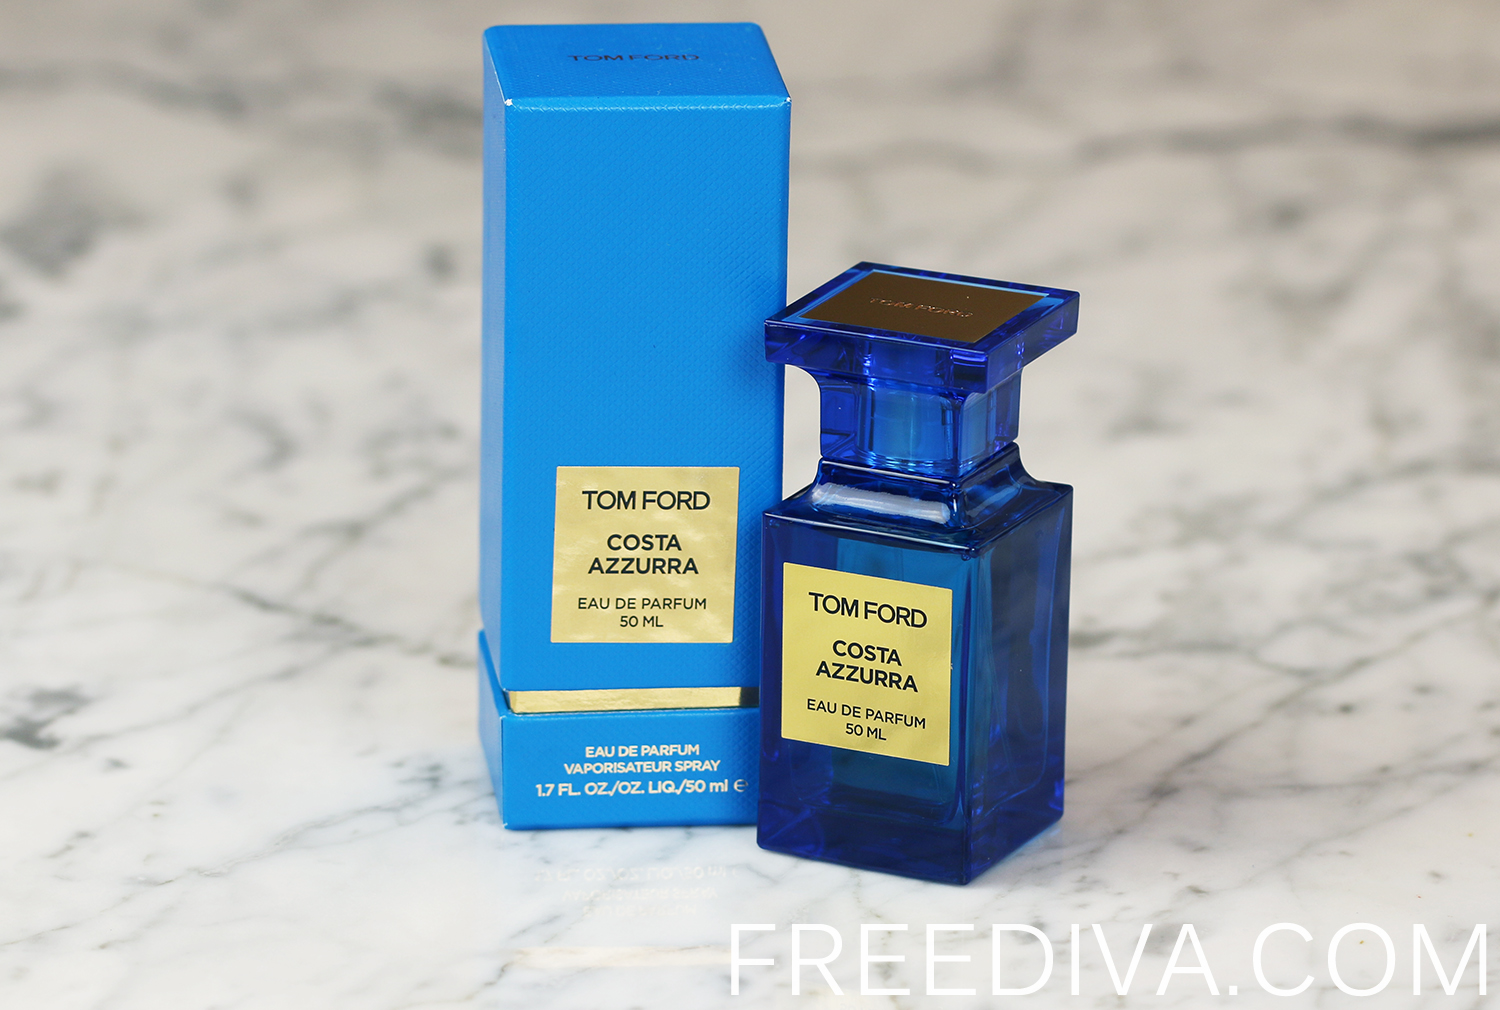 tom ford costa azzurra edp eau de parfum free diva. Black Bedroom Furniture Sets. Home Design Ideas